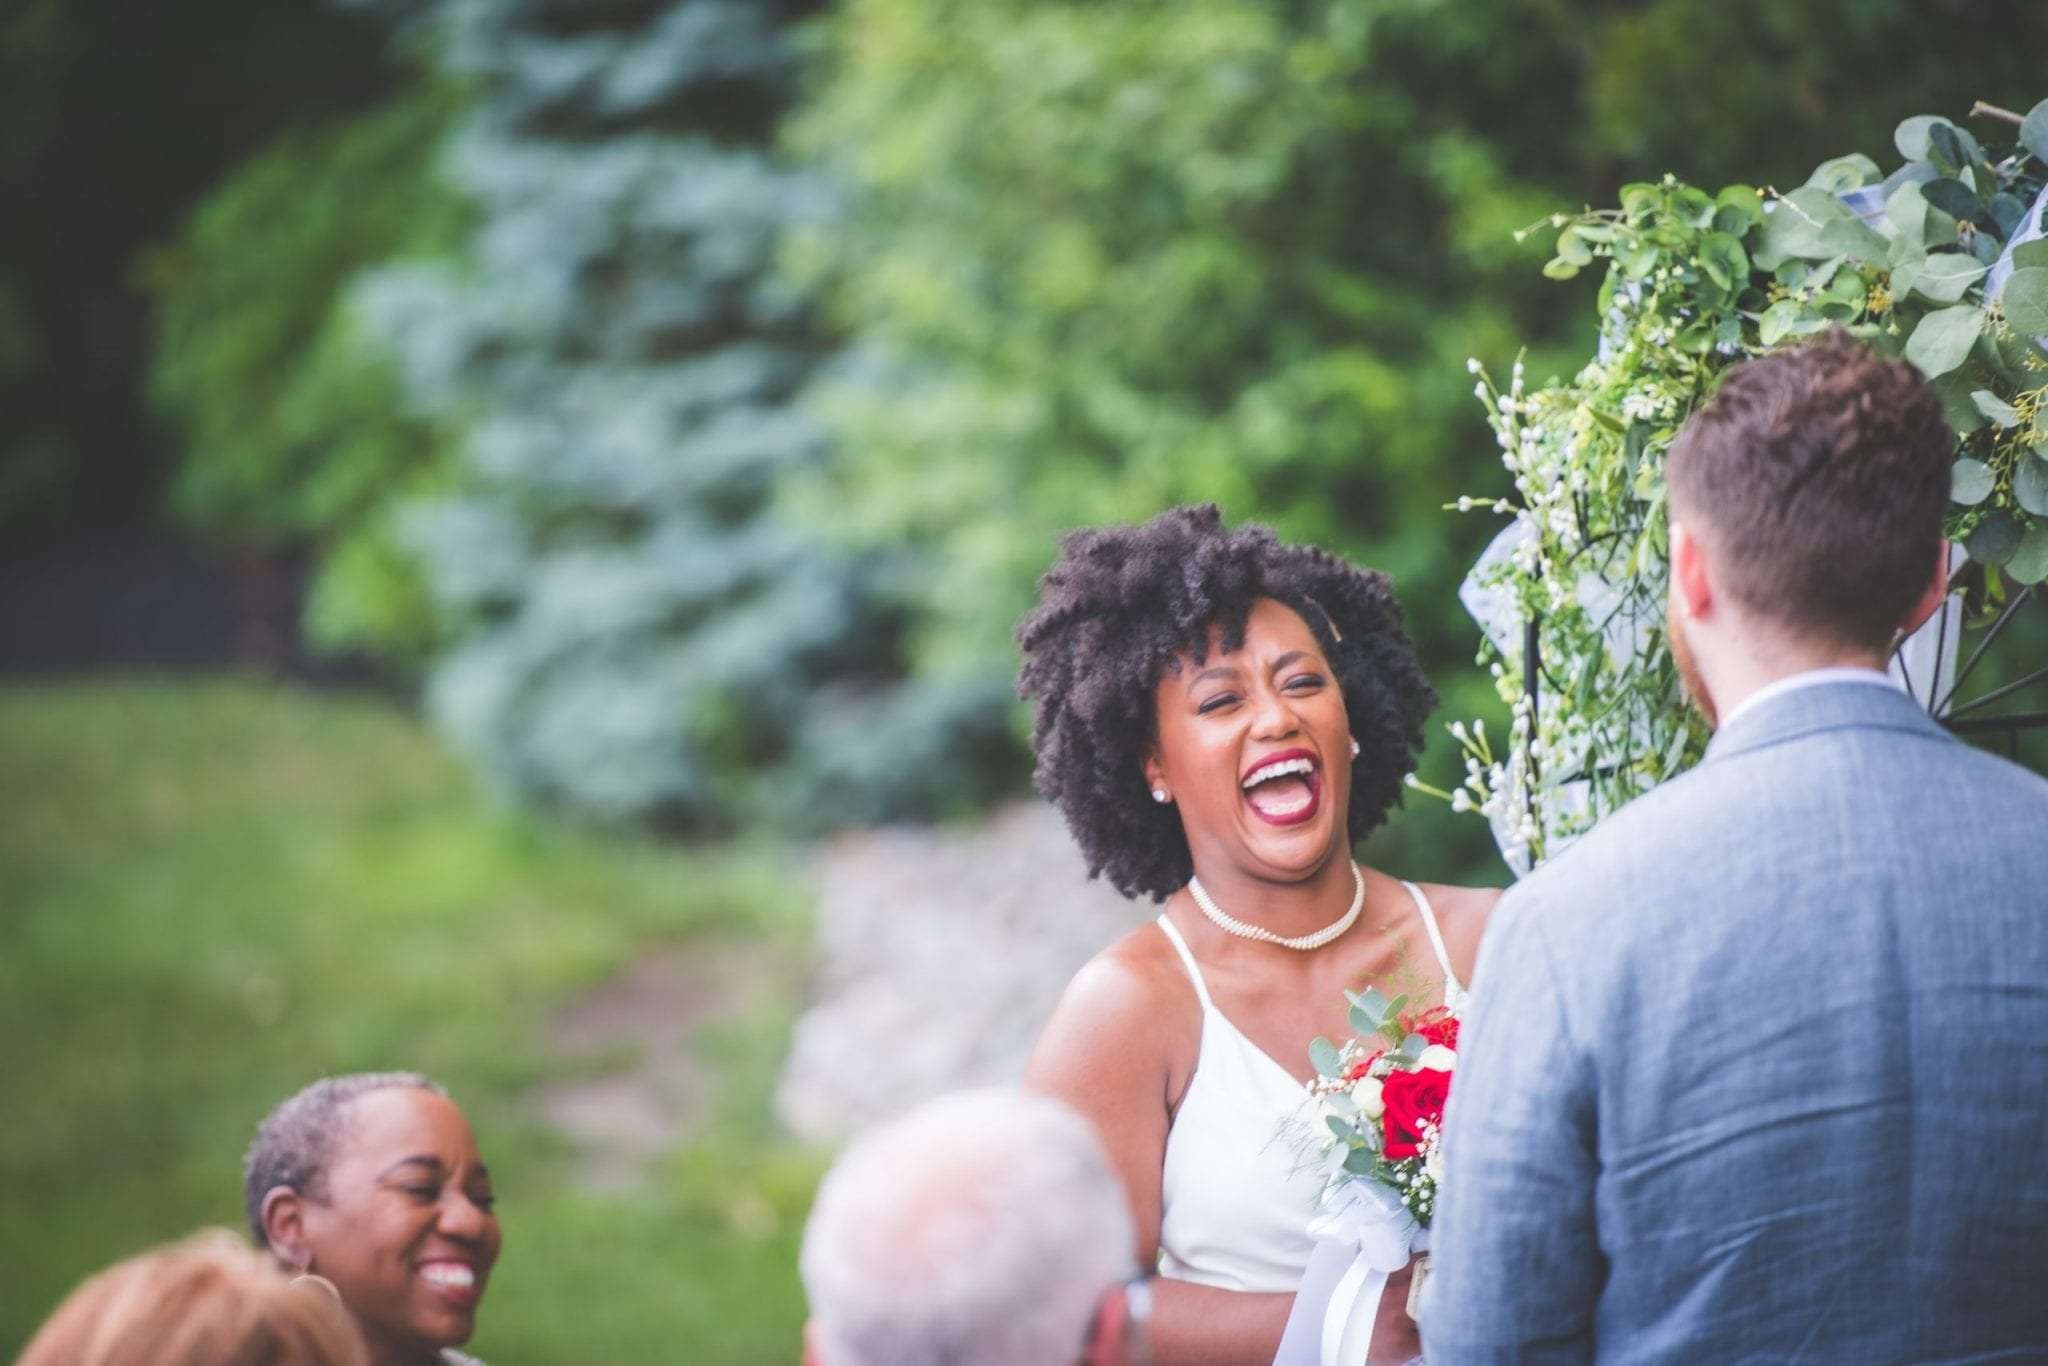 NJ backyard Micro wedding photographer